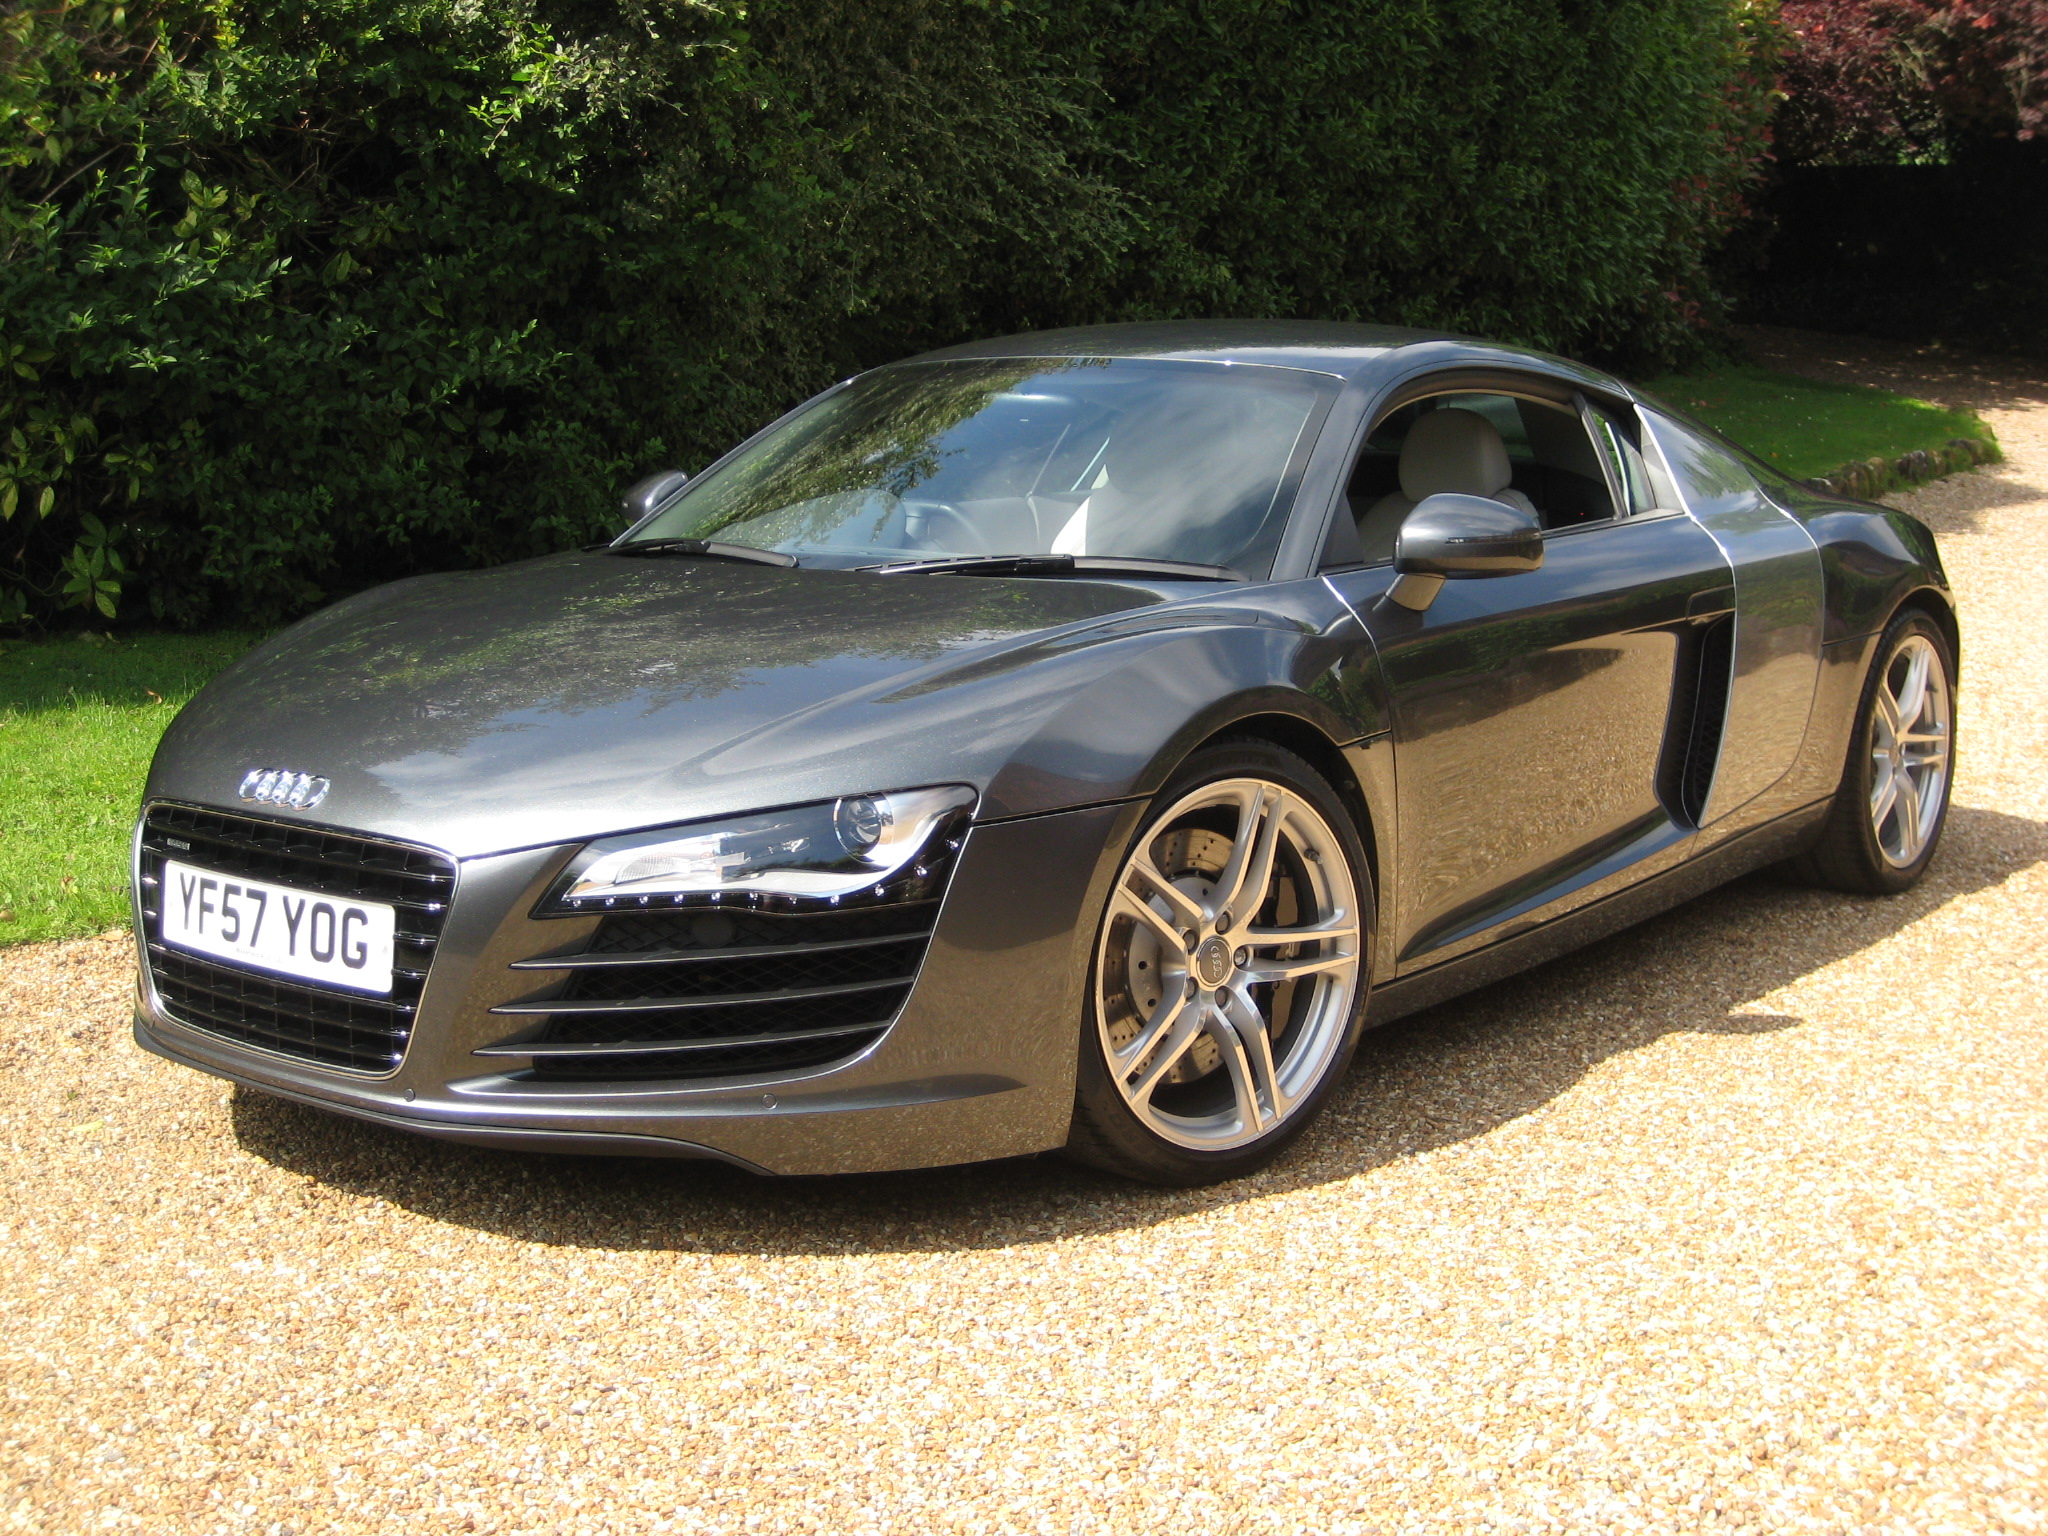 Picture of 2007 Audi R8 Quattro 1 P/Owner With Only 19500 Miles From New For Sale